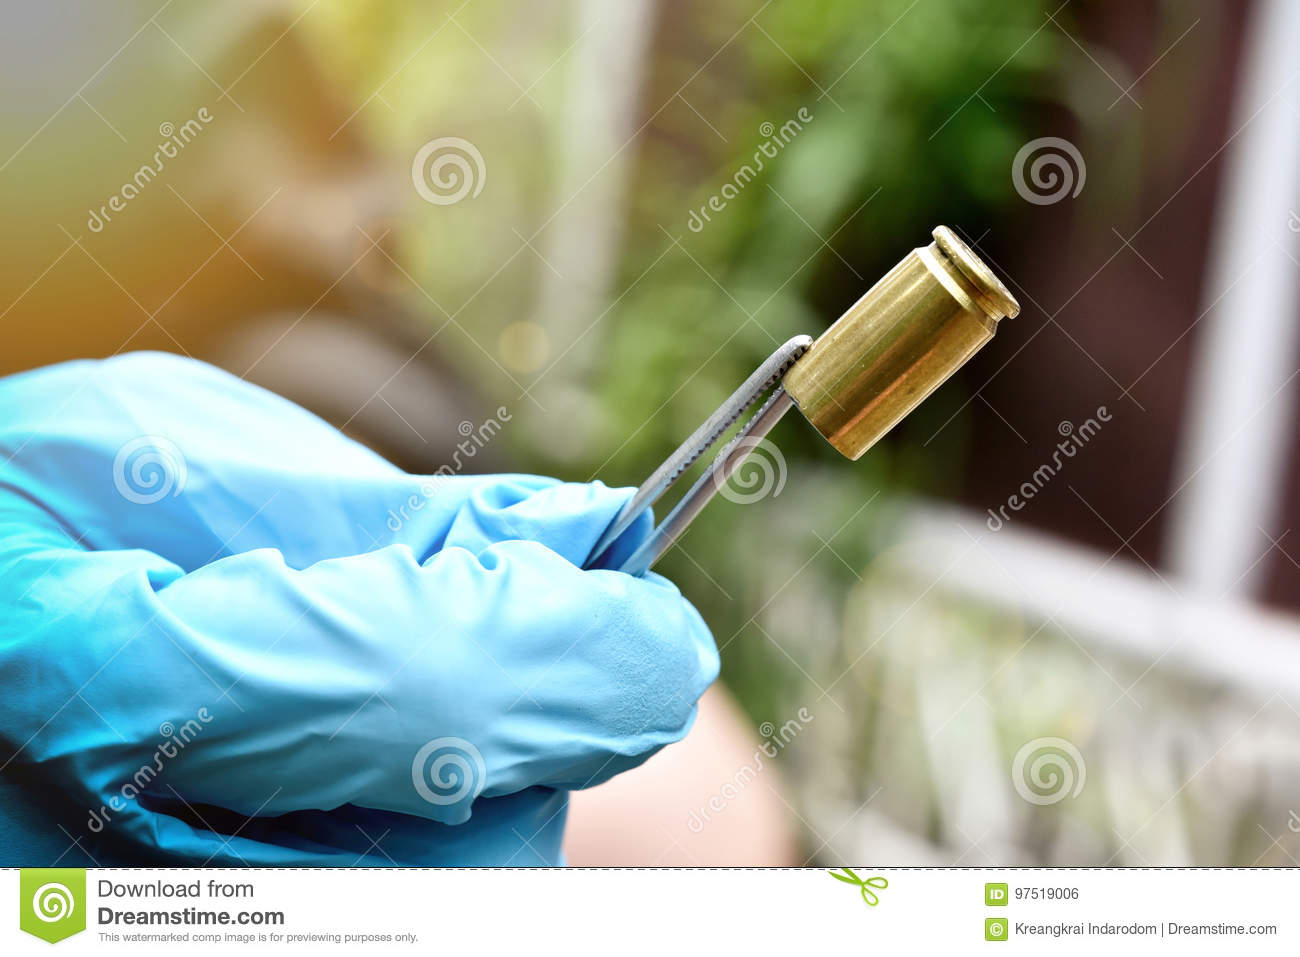 Crime scene investigation, Detective collecting bullet shell with blood stain